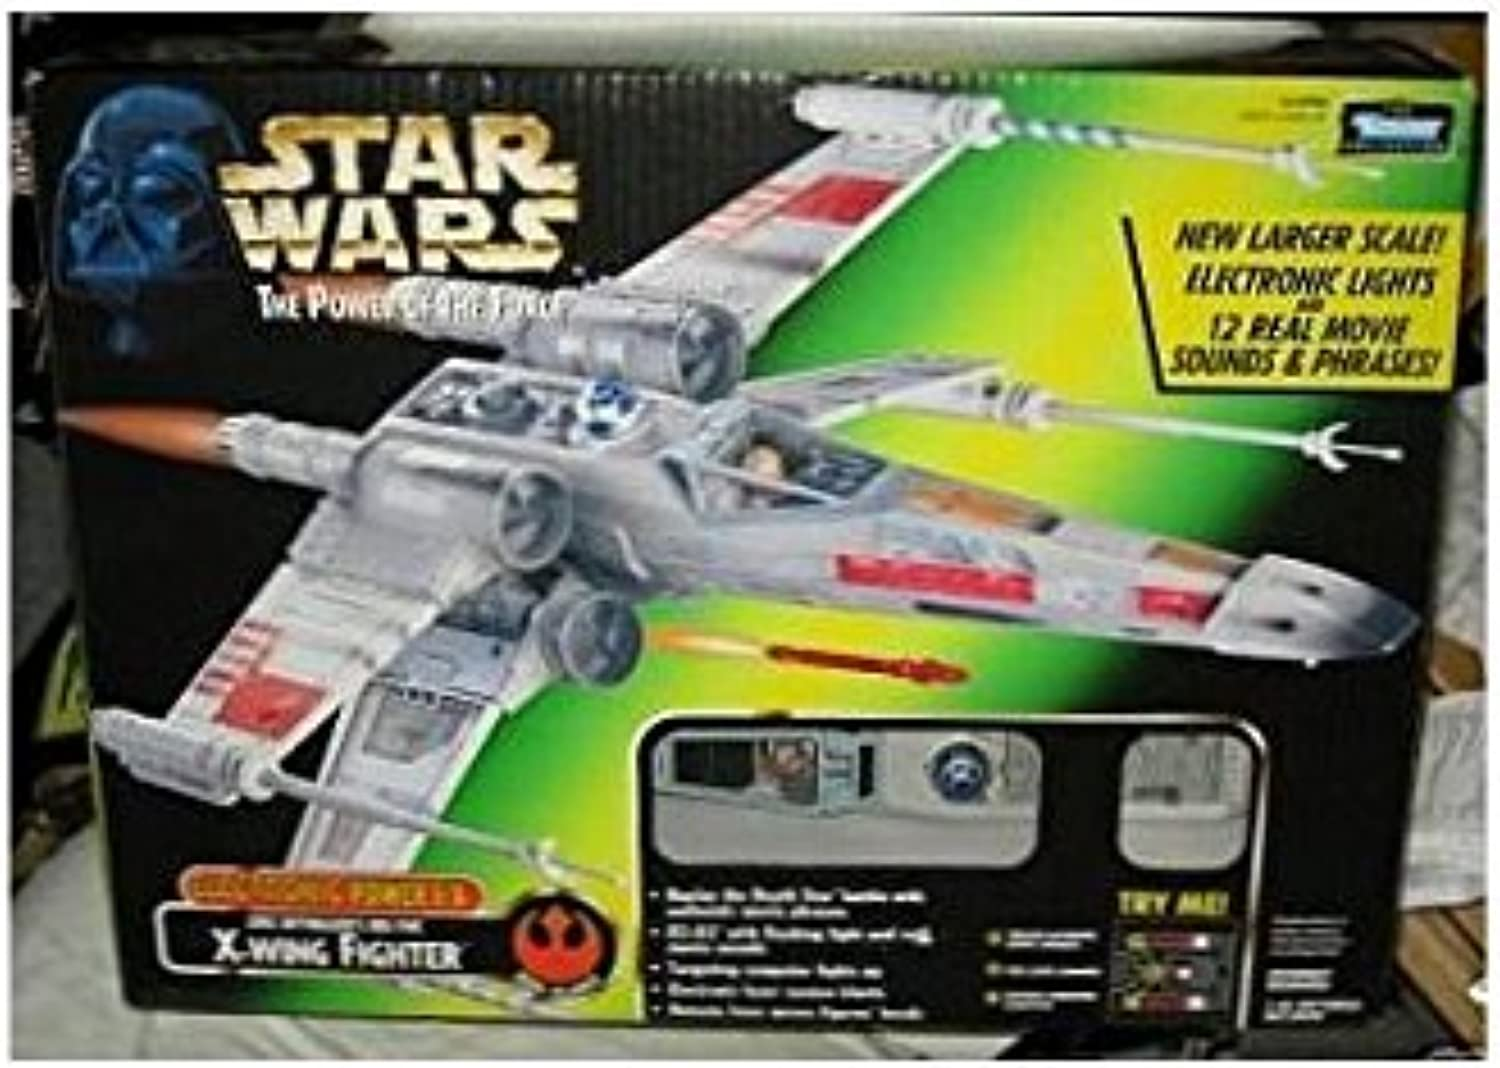 Star Wars Electronic Power F X X-Wing Fighter Red Five by Yves